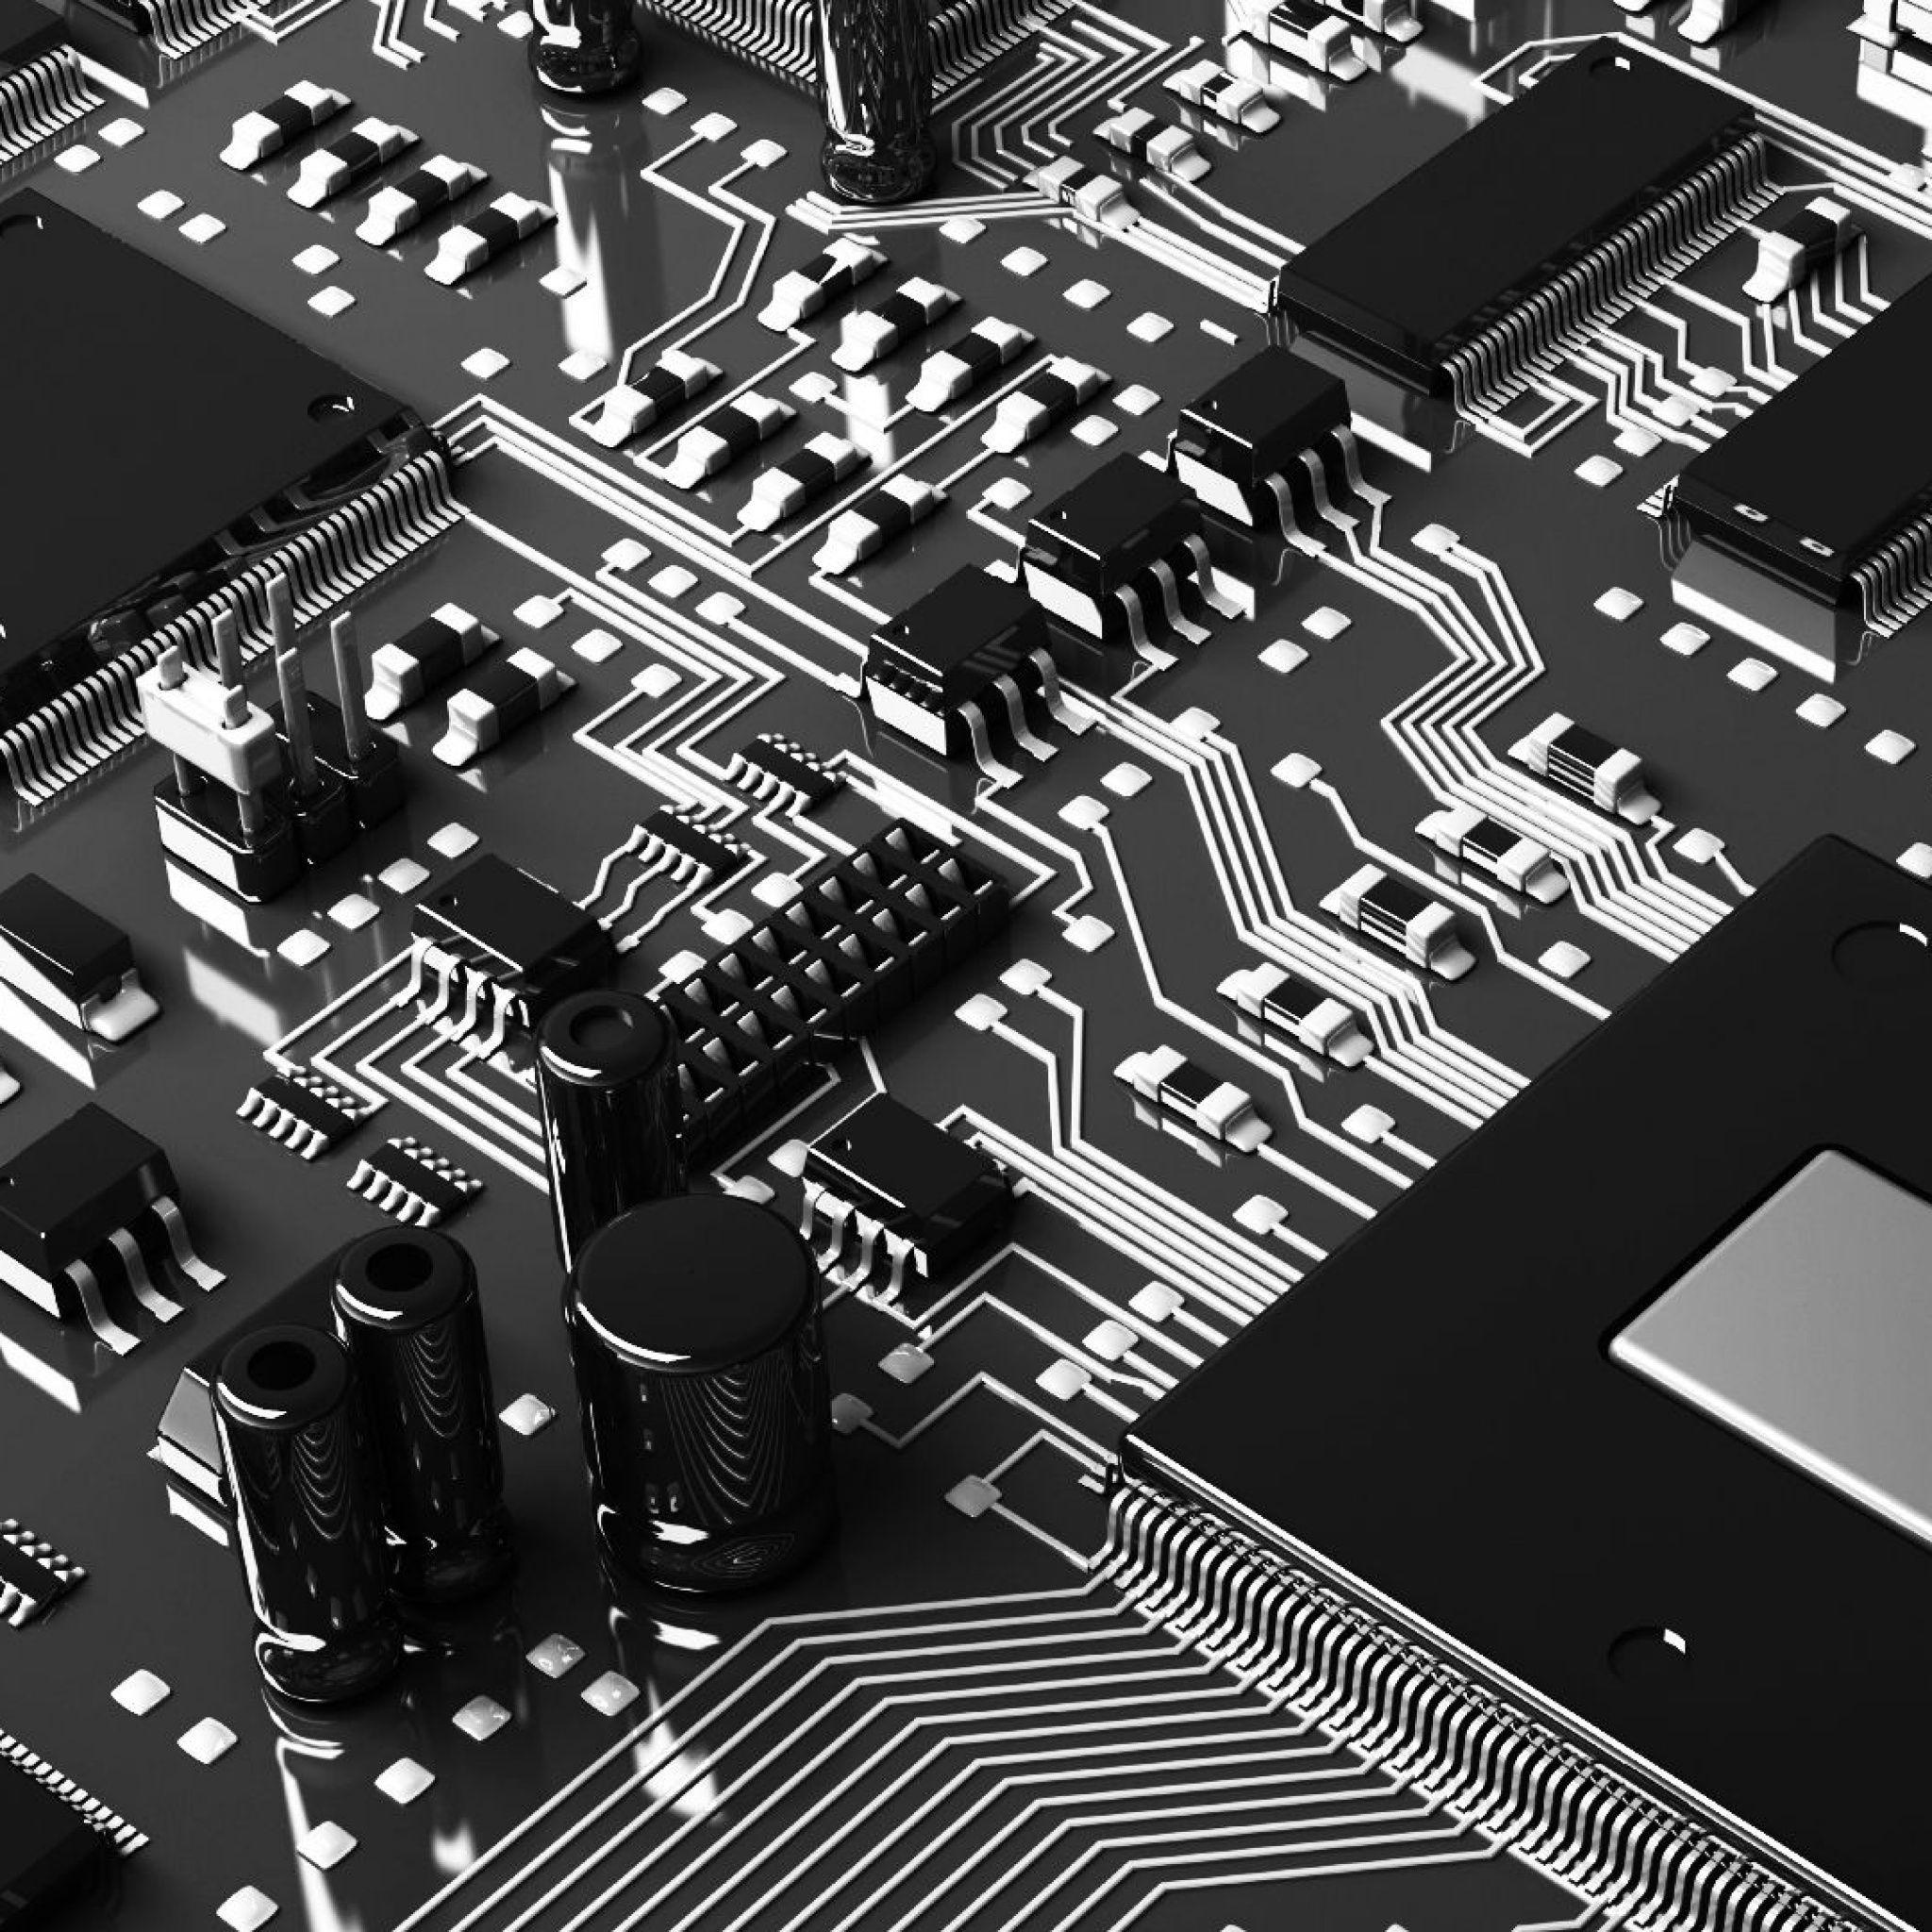 Motherboard iPad 1 & 2 Wallpaper | ID: 35121